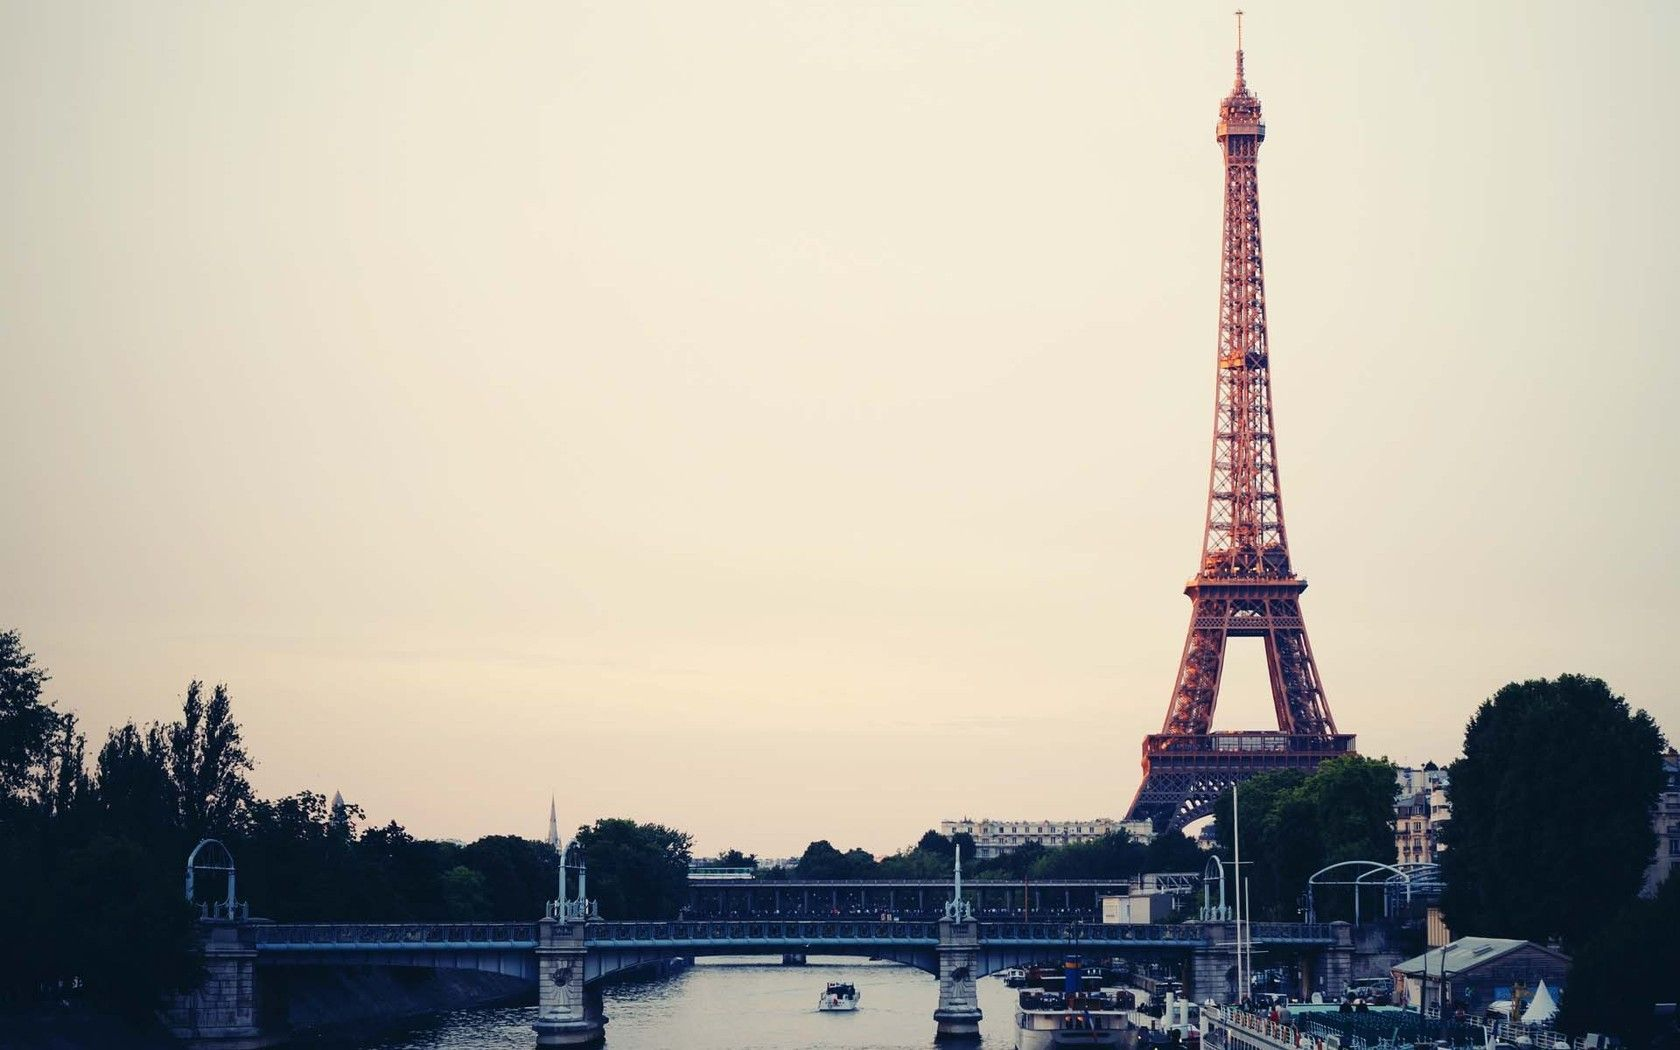 Eiffel Tower Vintage Wallpapers Hd Paris Wallpaper City Wallpaper Eiffel Tower